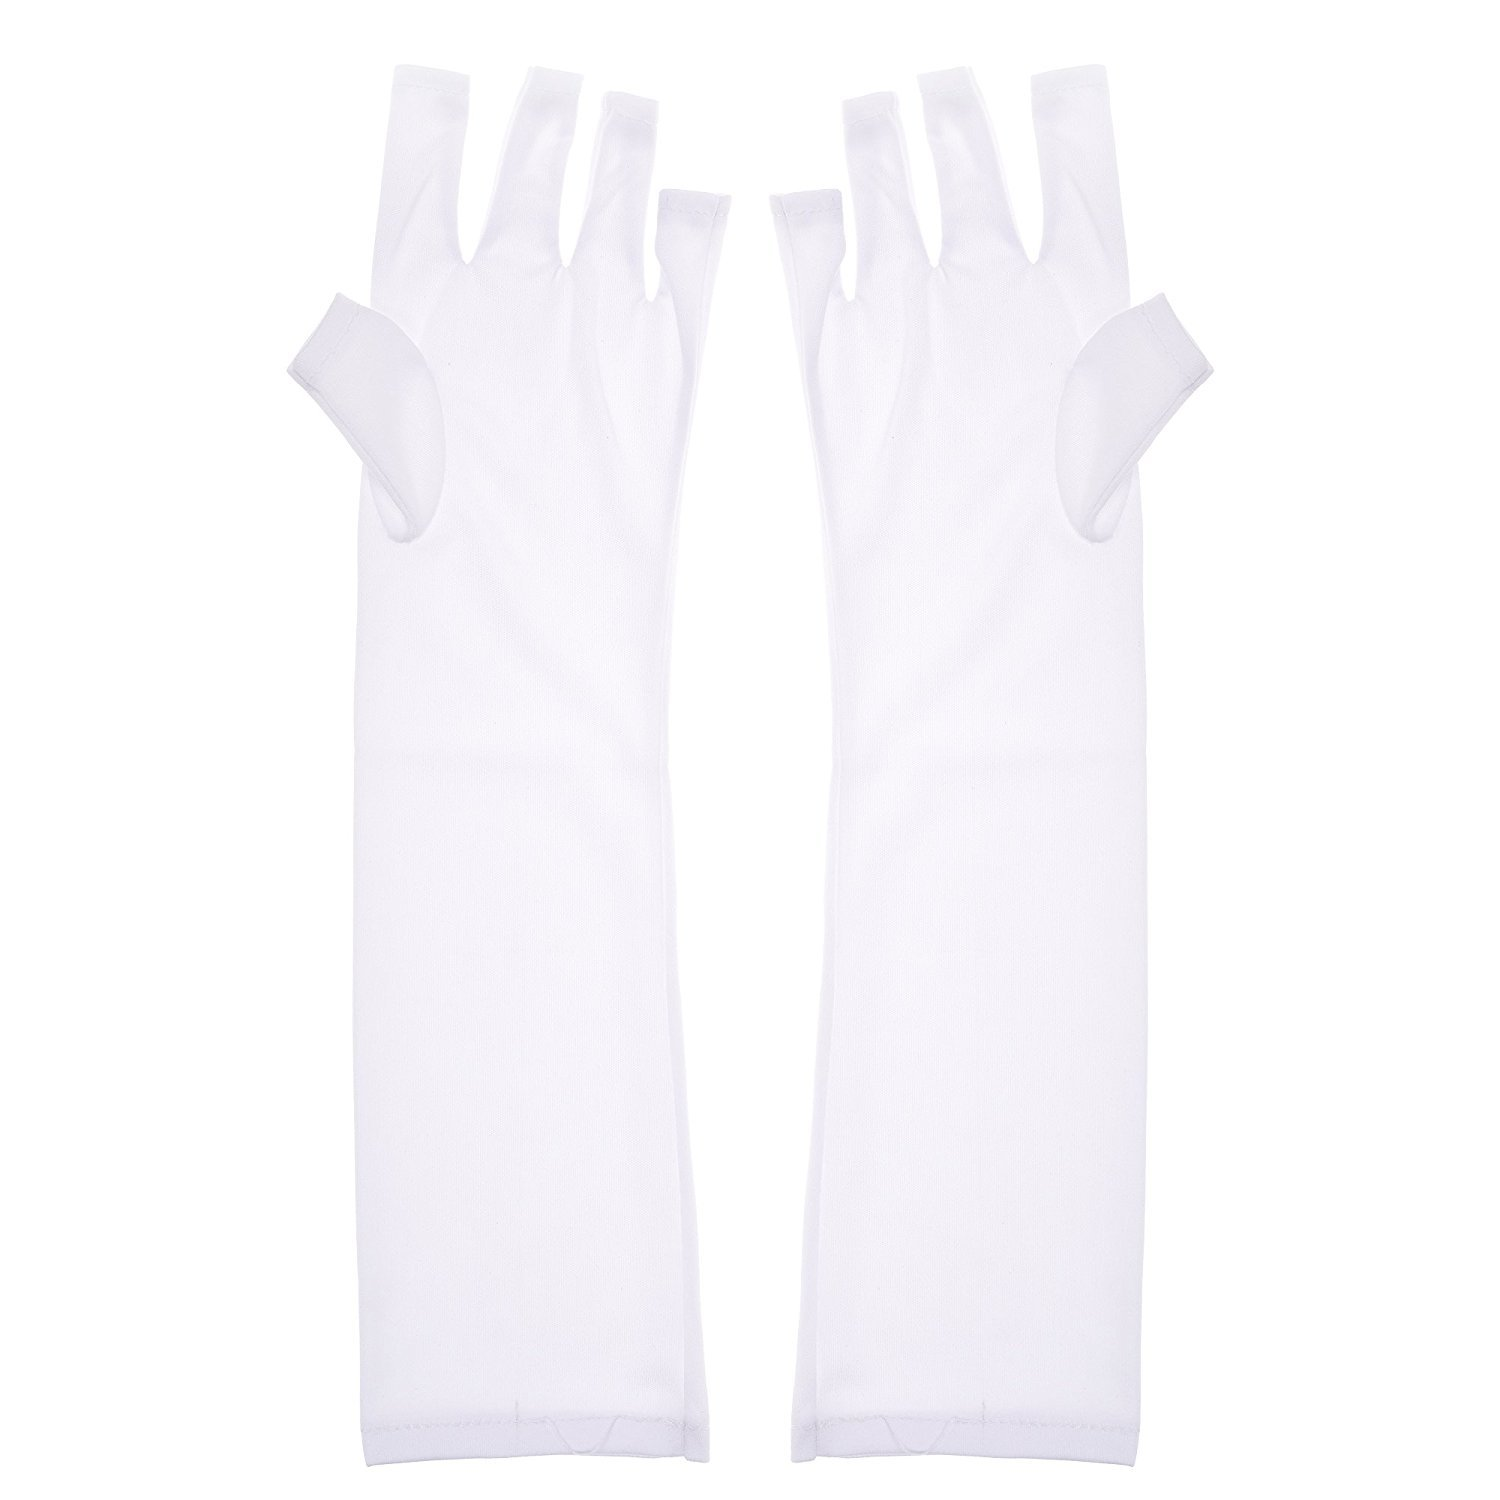 KLOUD City Pack of 2 UV Protective Sleeves White Gloves For Led Nail Dryer Gel Curing Nail Polish